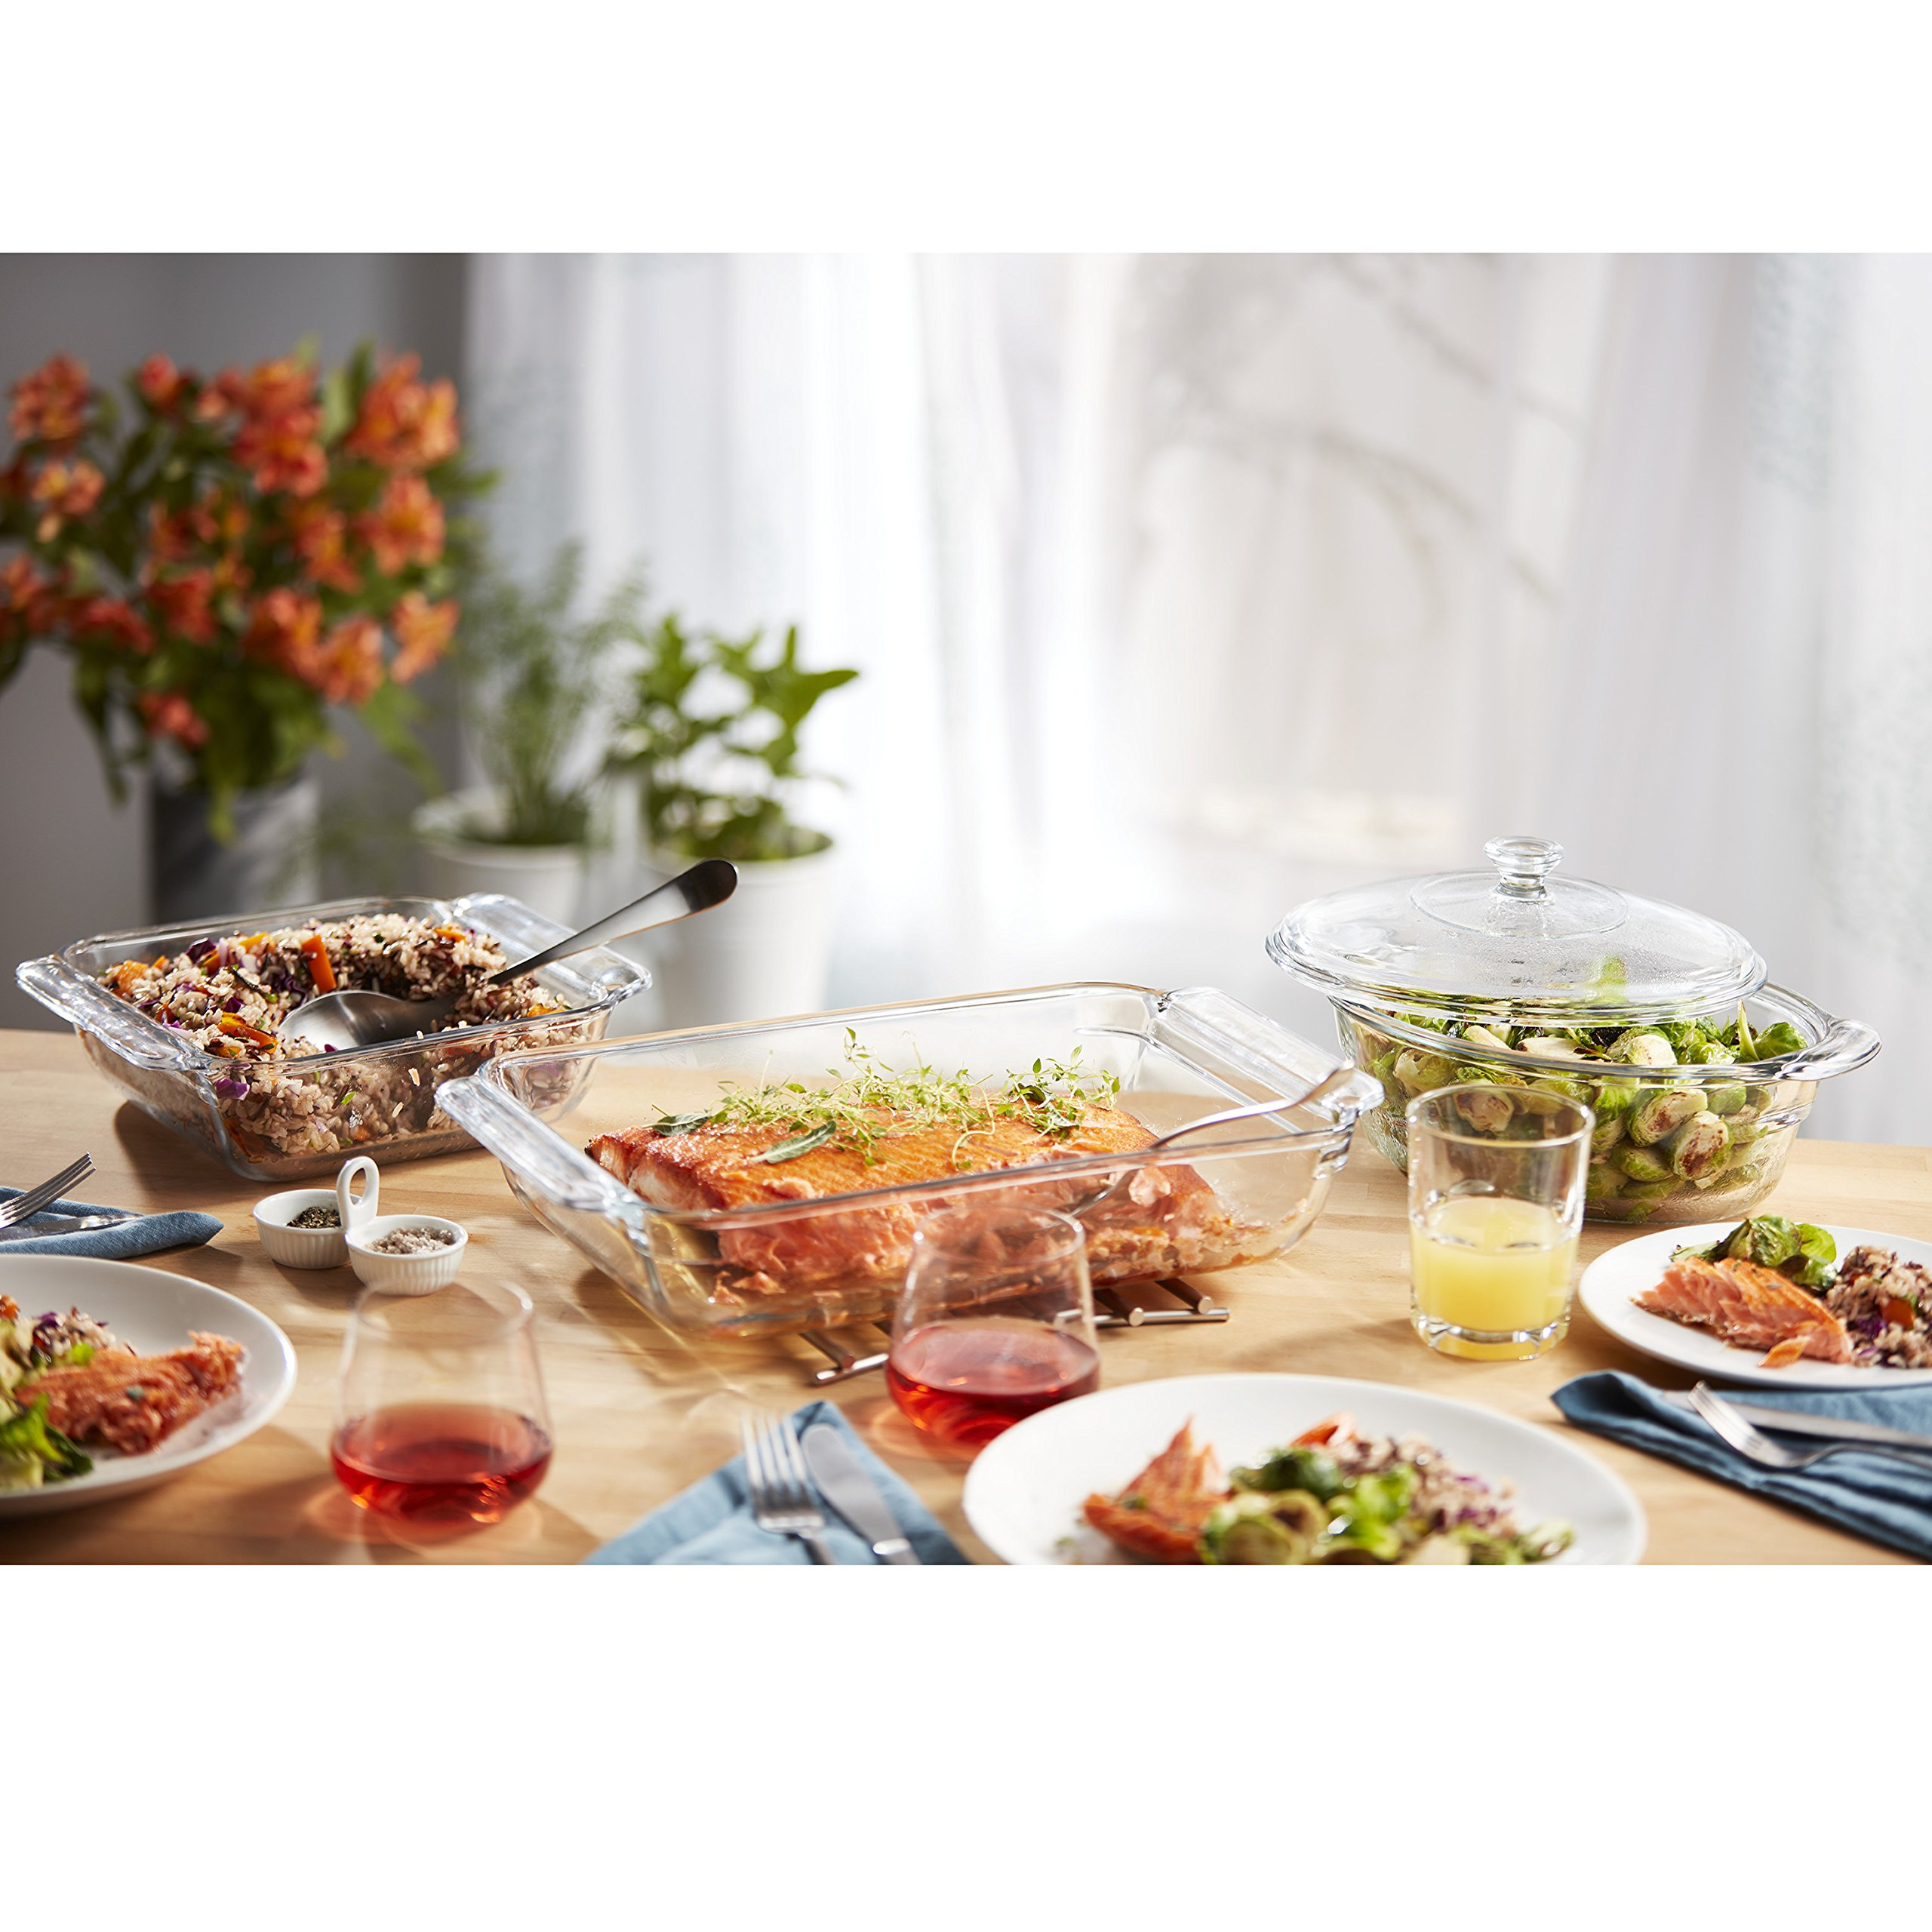 Libbey Baker's Premium 6-Piece Glass Casserole Baking Dish Set with 2 Covers by Libbey (Image #1)